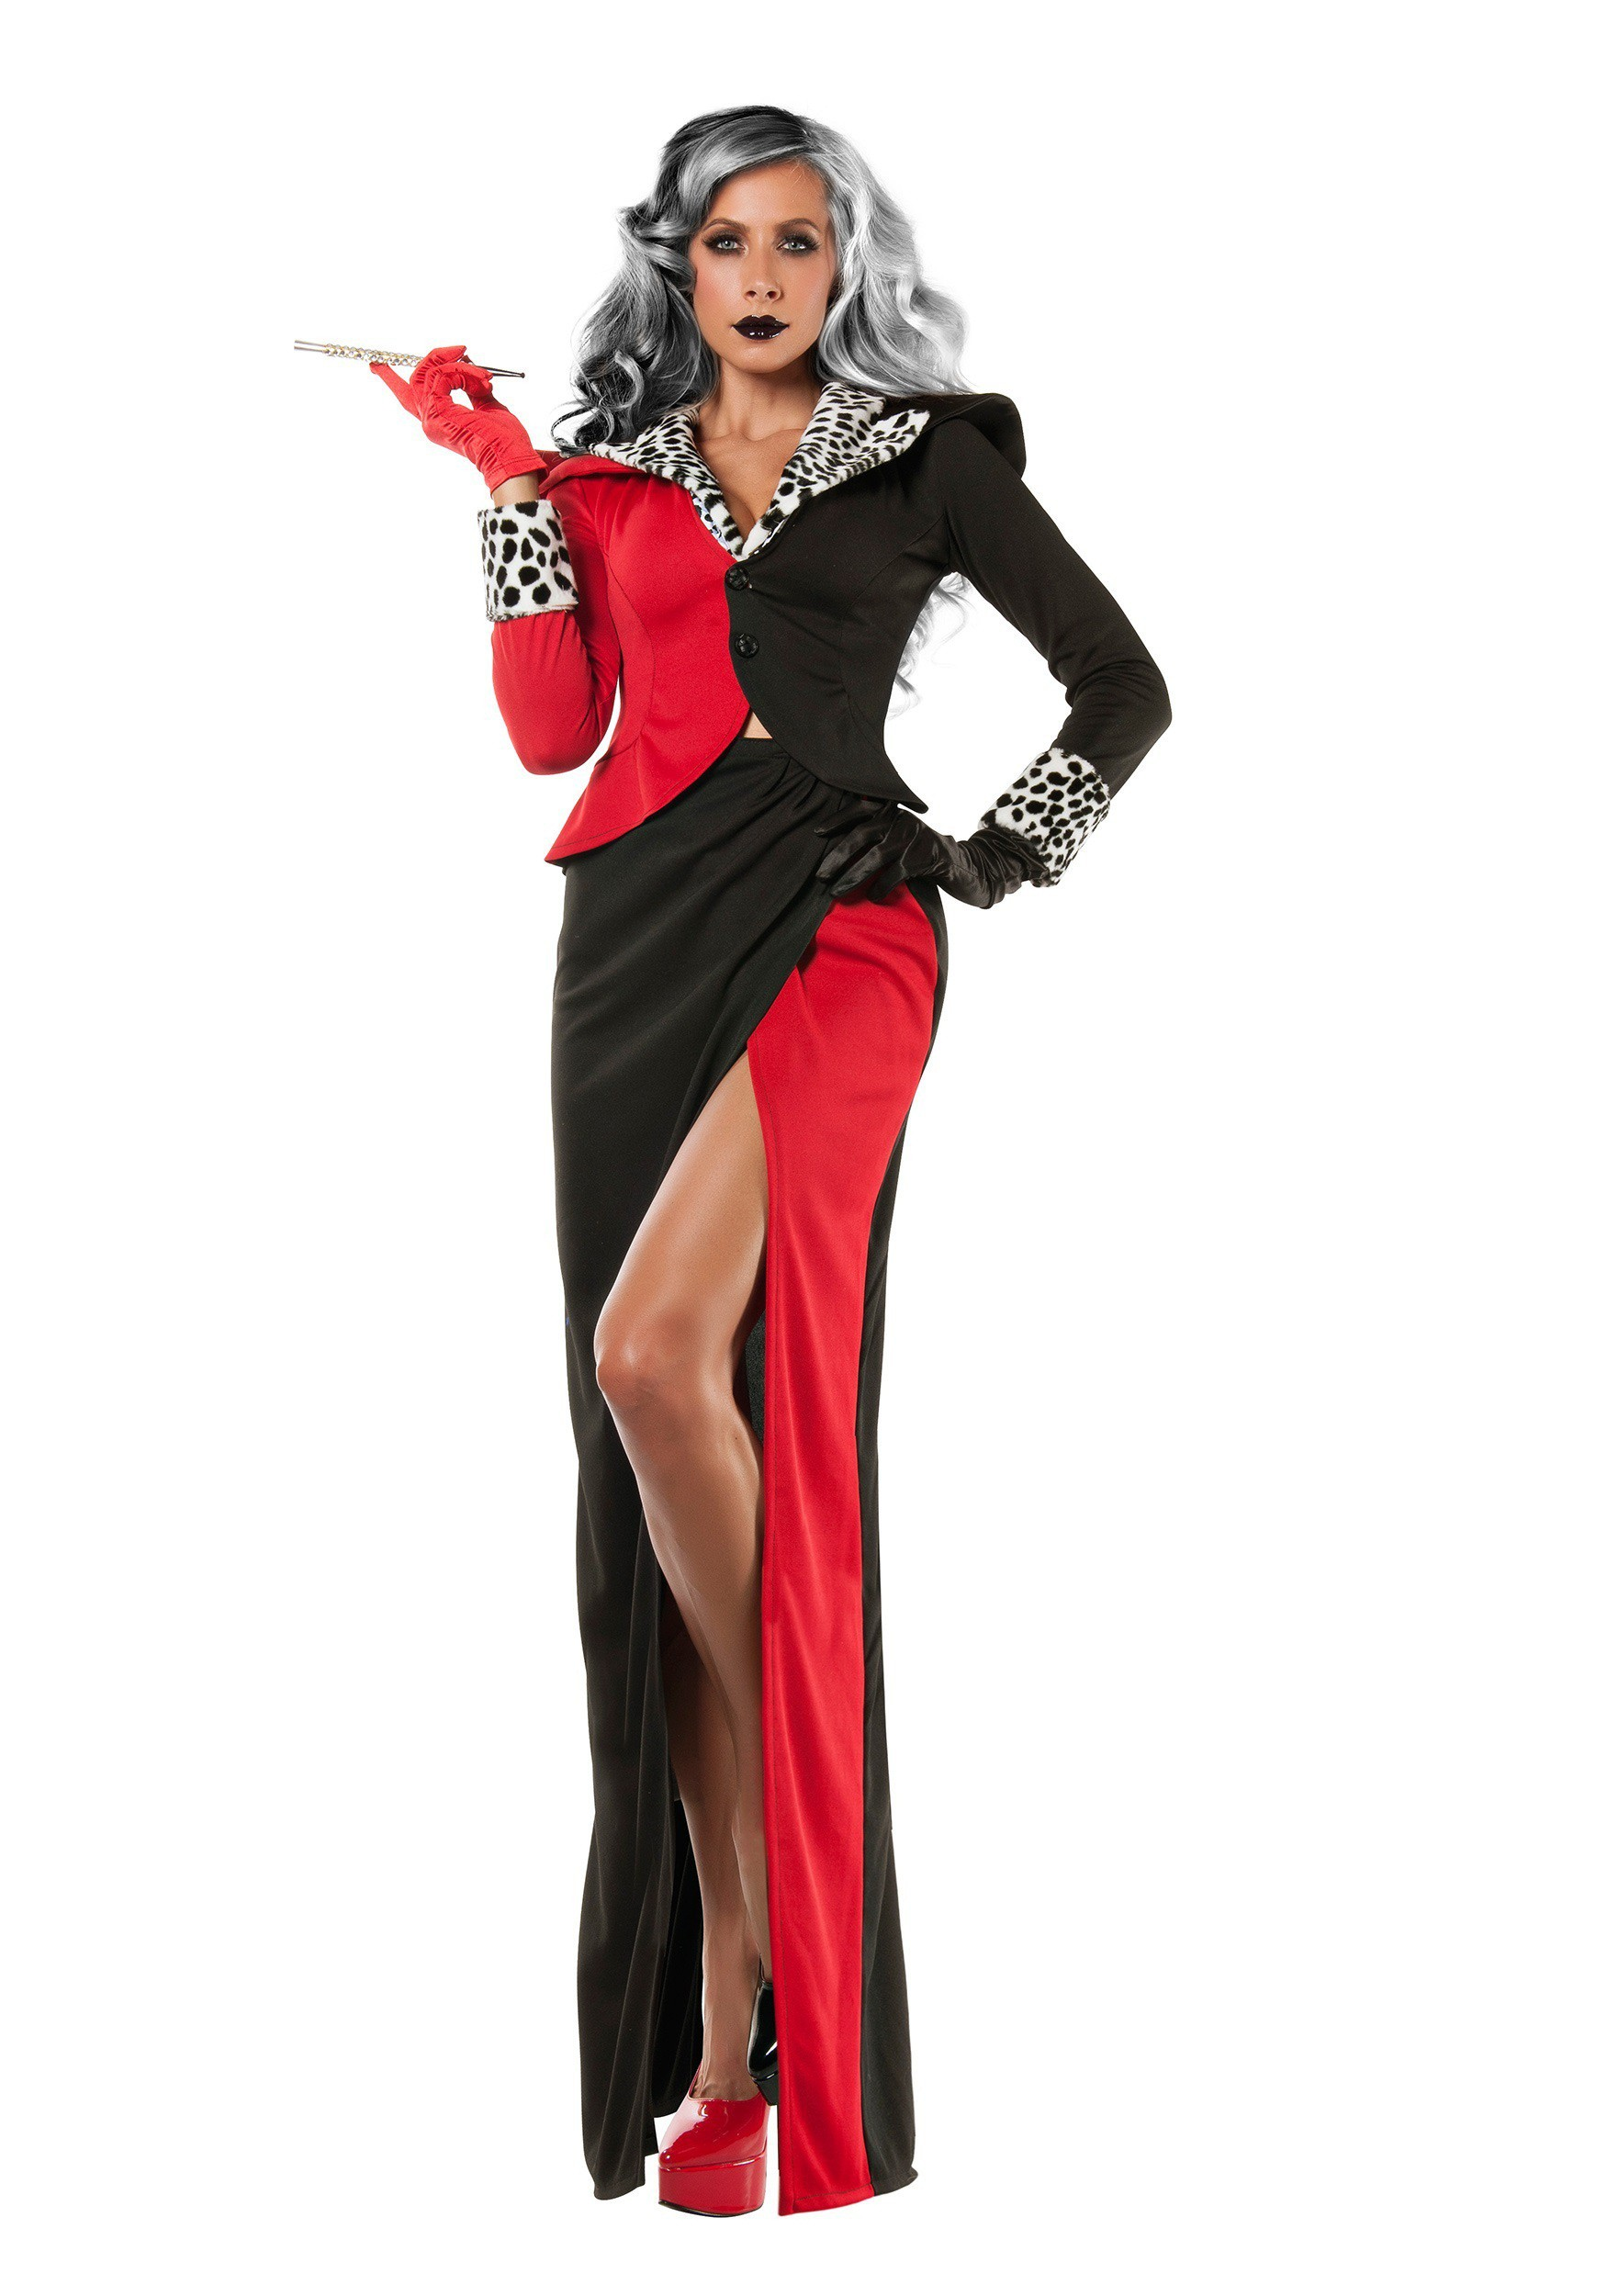 Cruella deville inspired | Mr Dress up - Halloween ideas ...